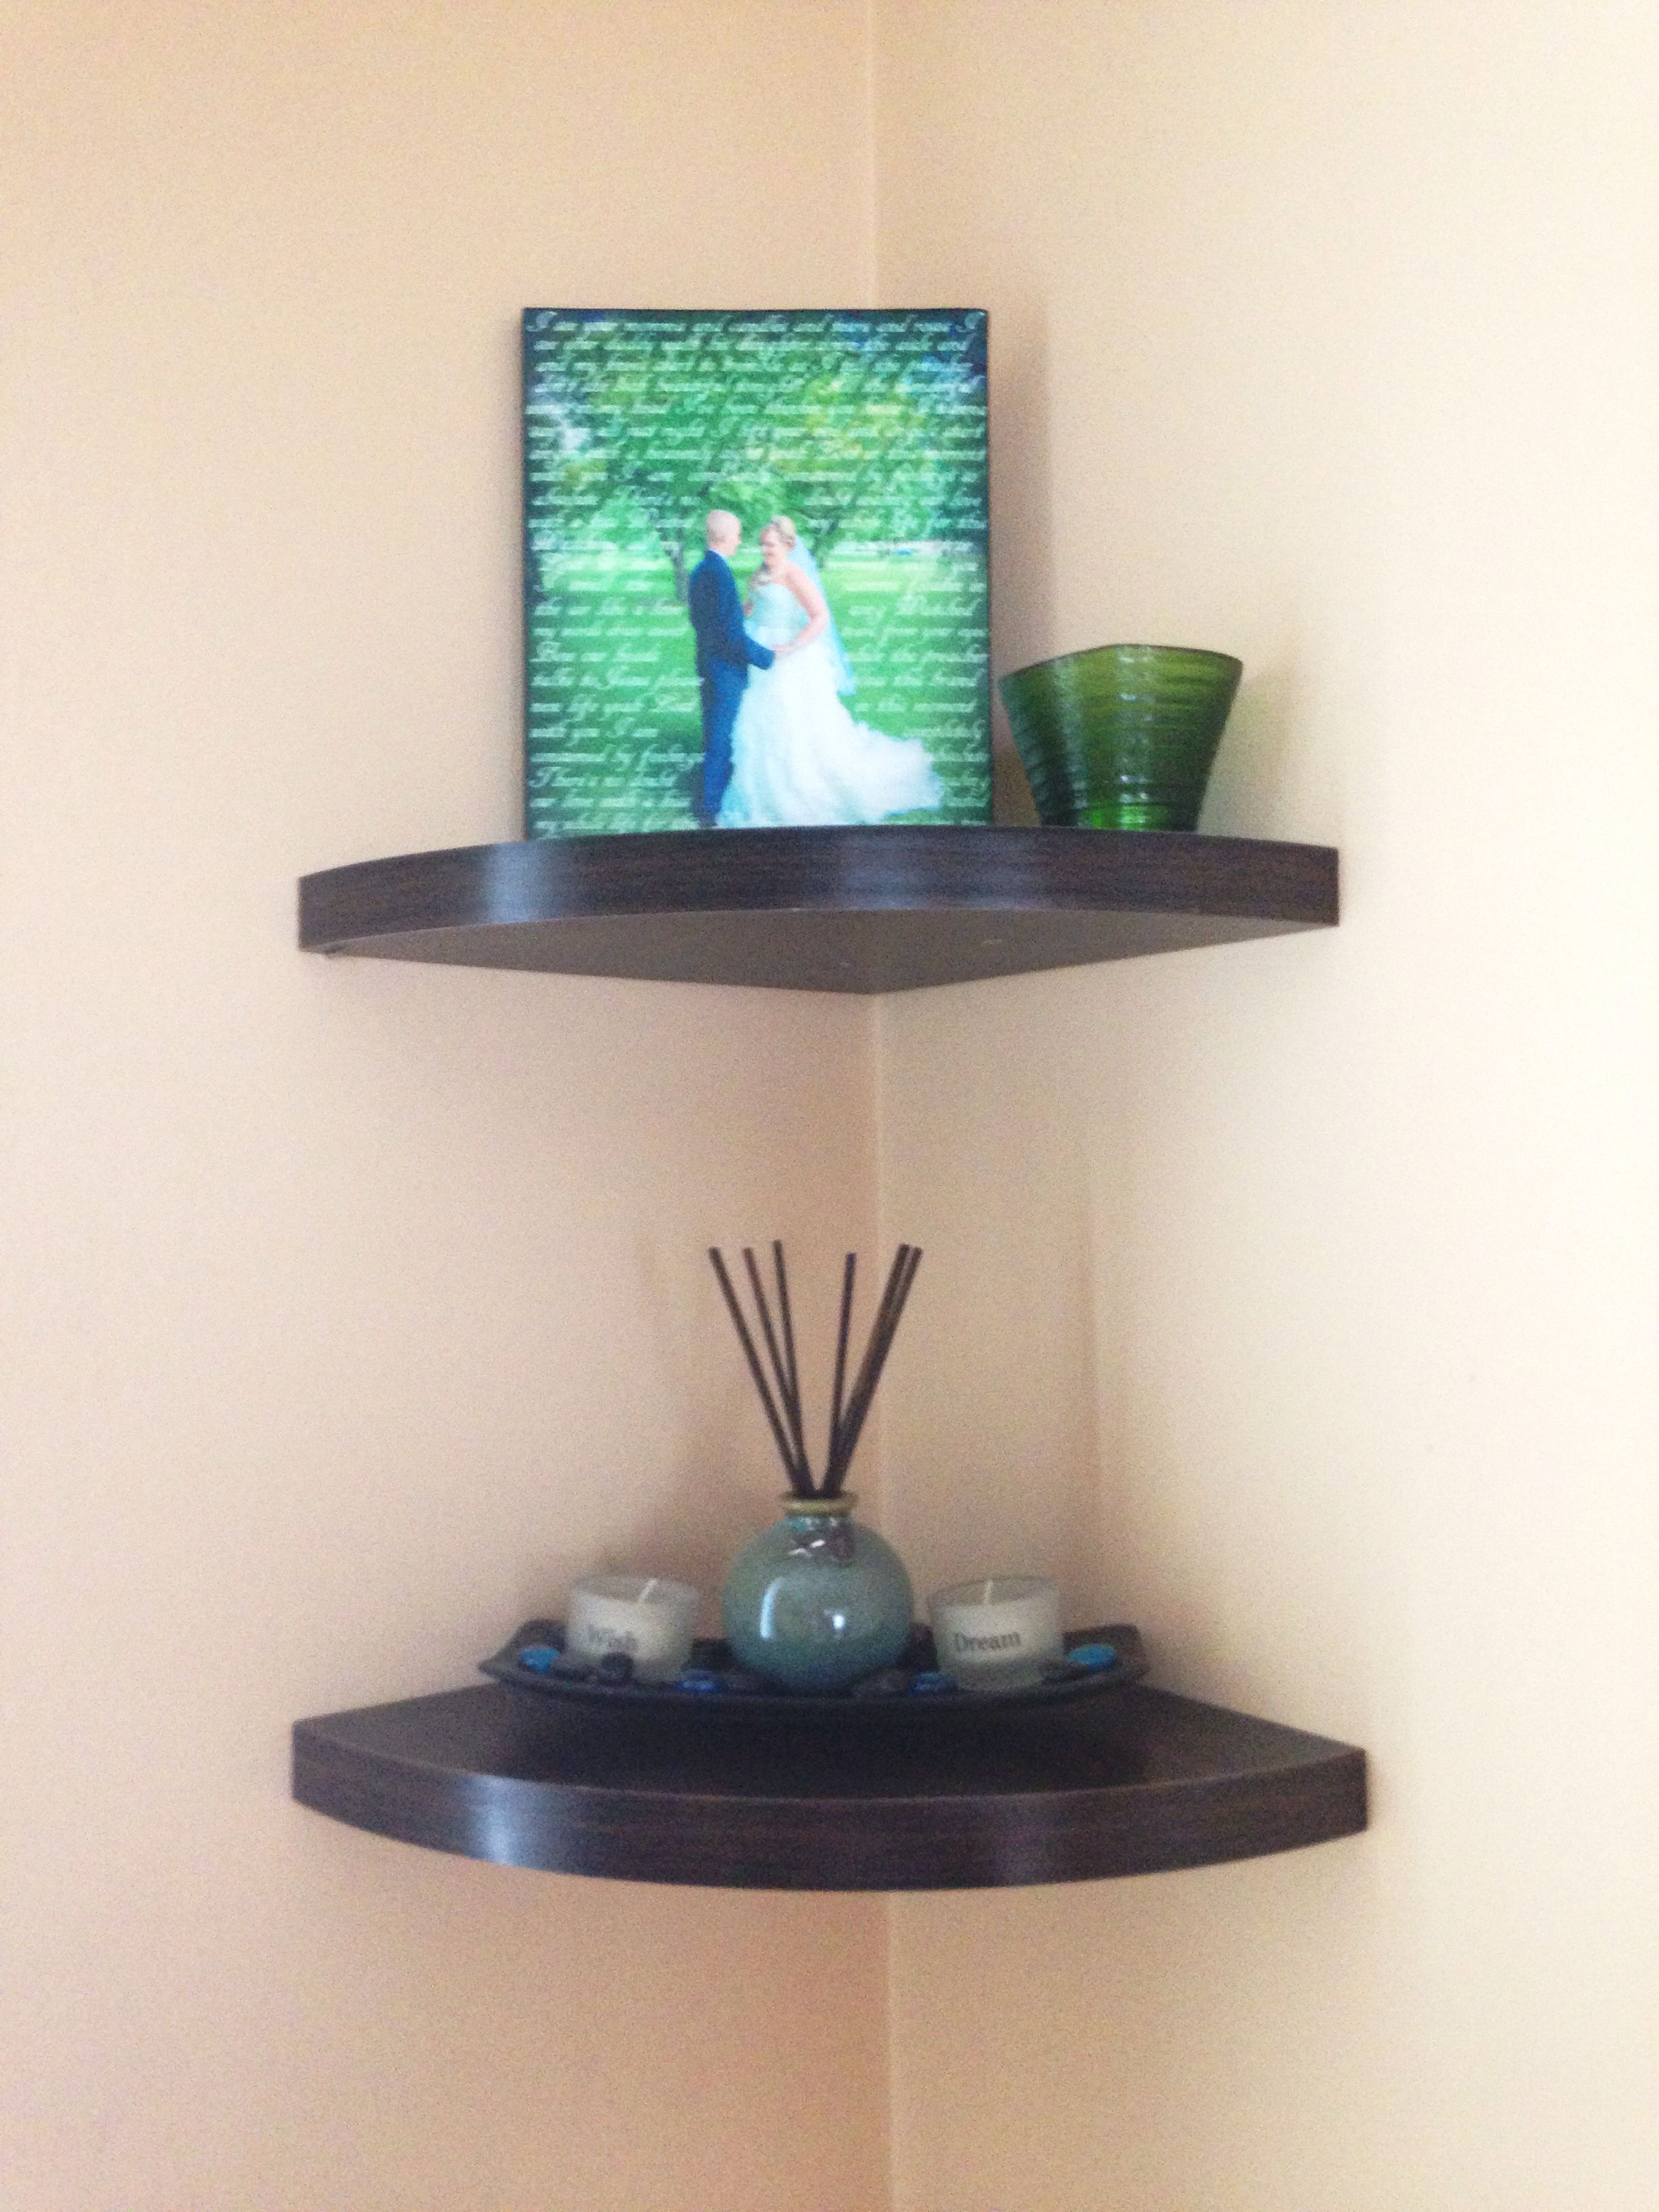 Target Floating Shelves Pleasing Floating Corner Wall Shelf From Target  Folliard House  Pinterest